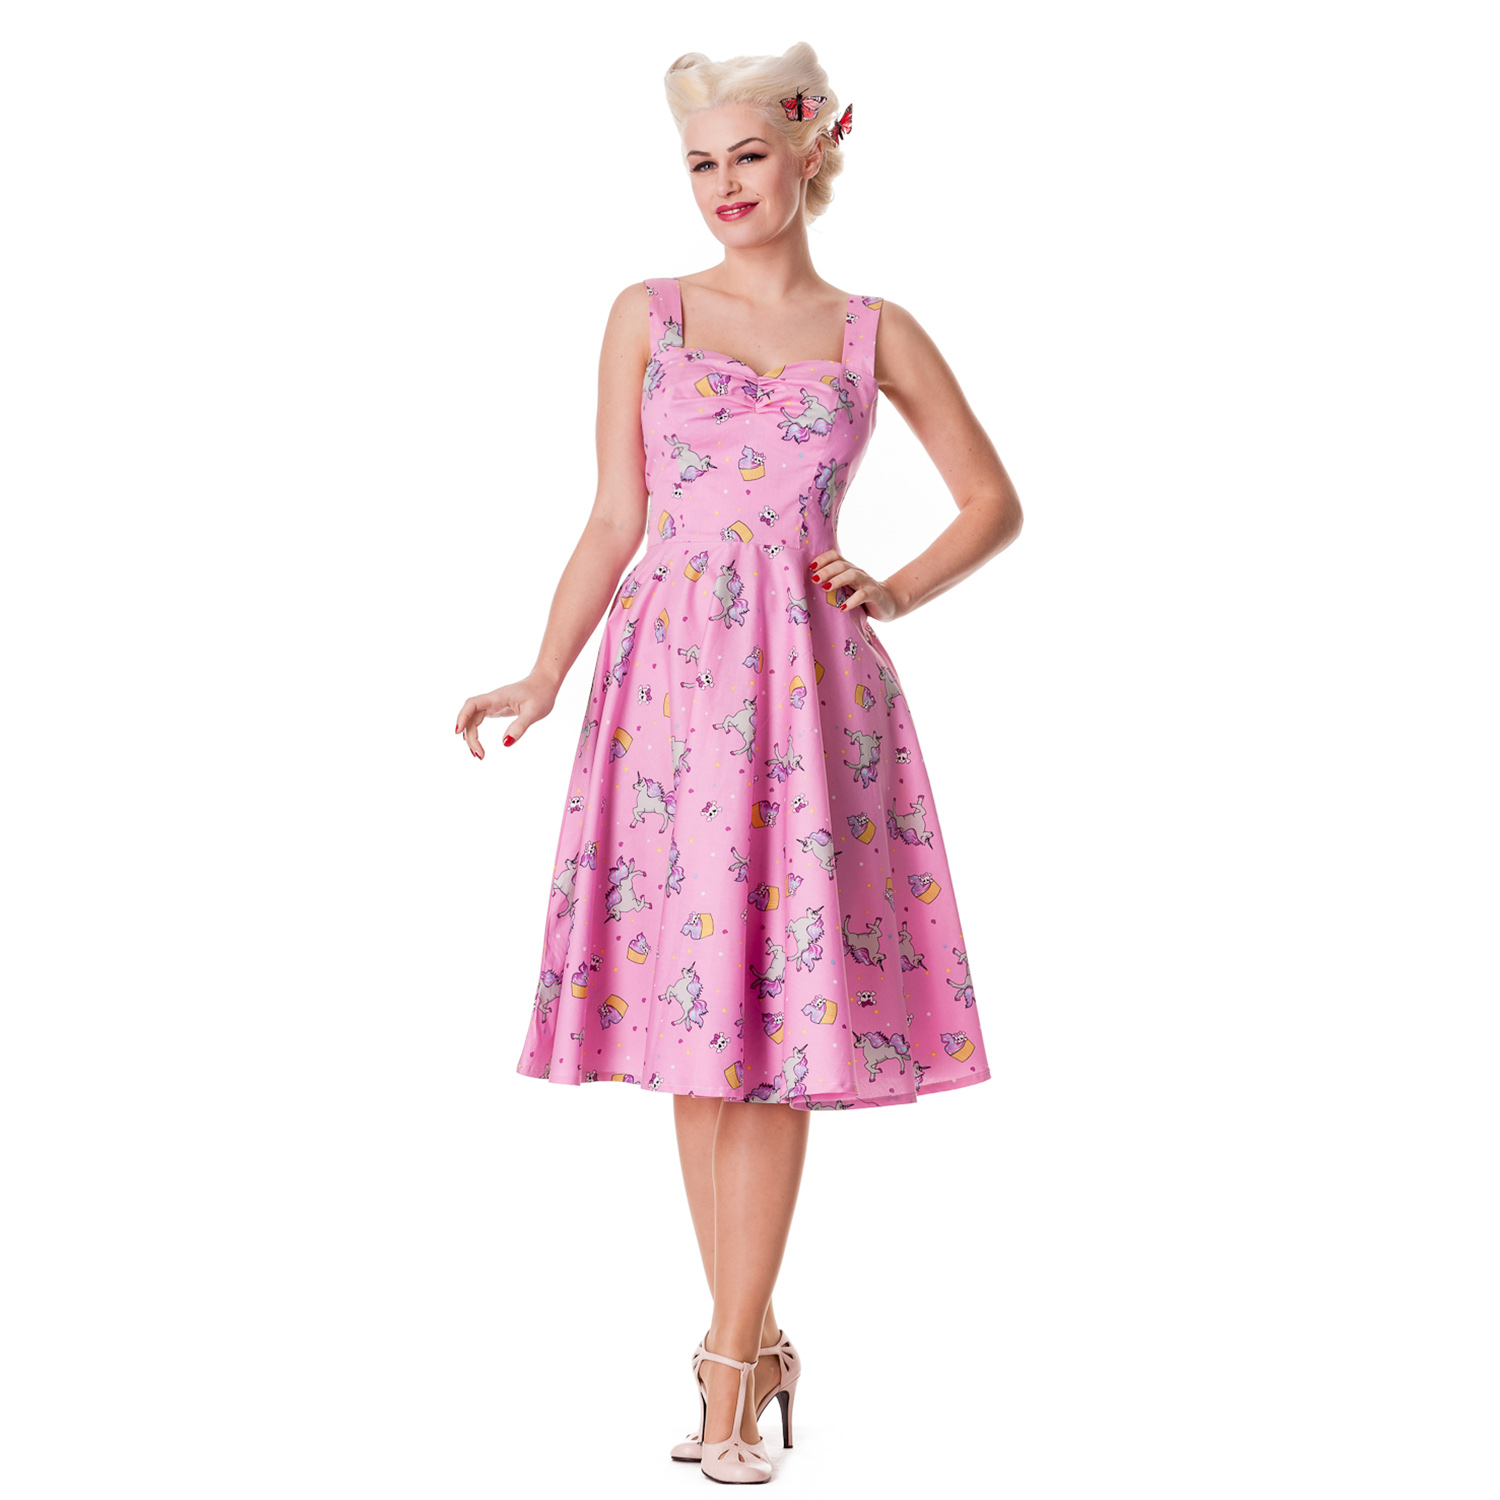 Hell-Bunny-Mystical-50S-Pink-Black-Cupcake-Rockabilly-Vintage-Party-Prom-Dress